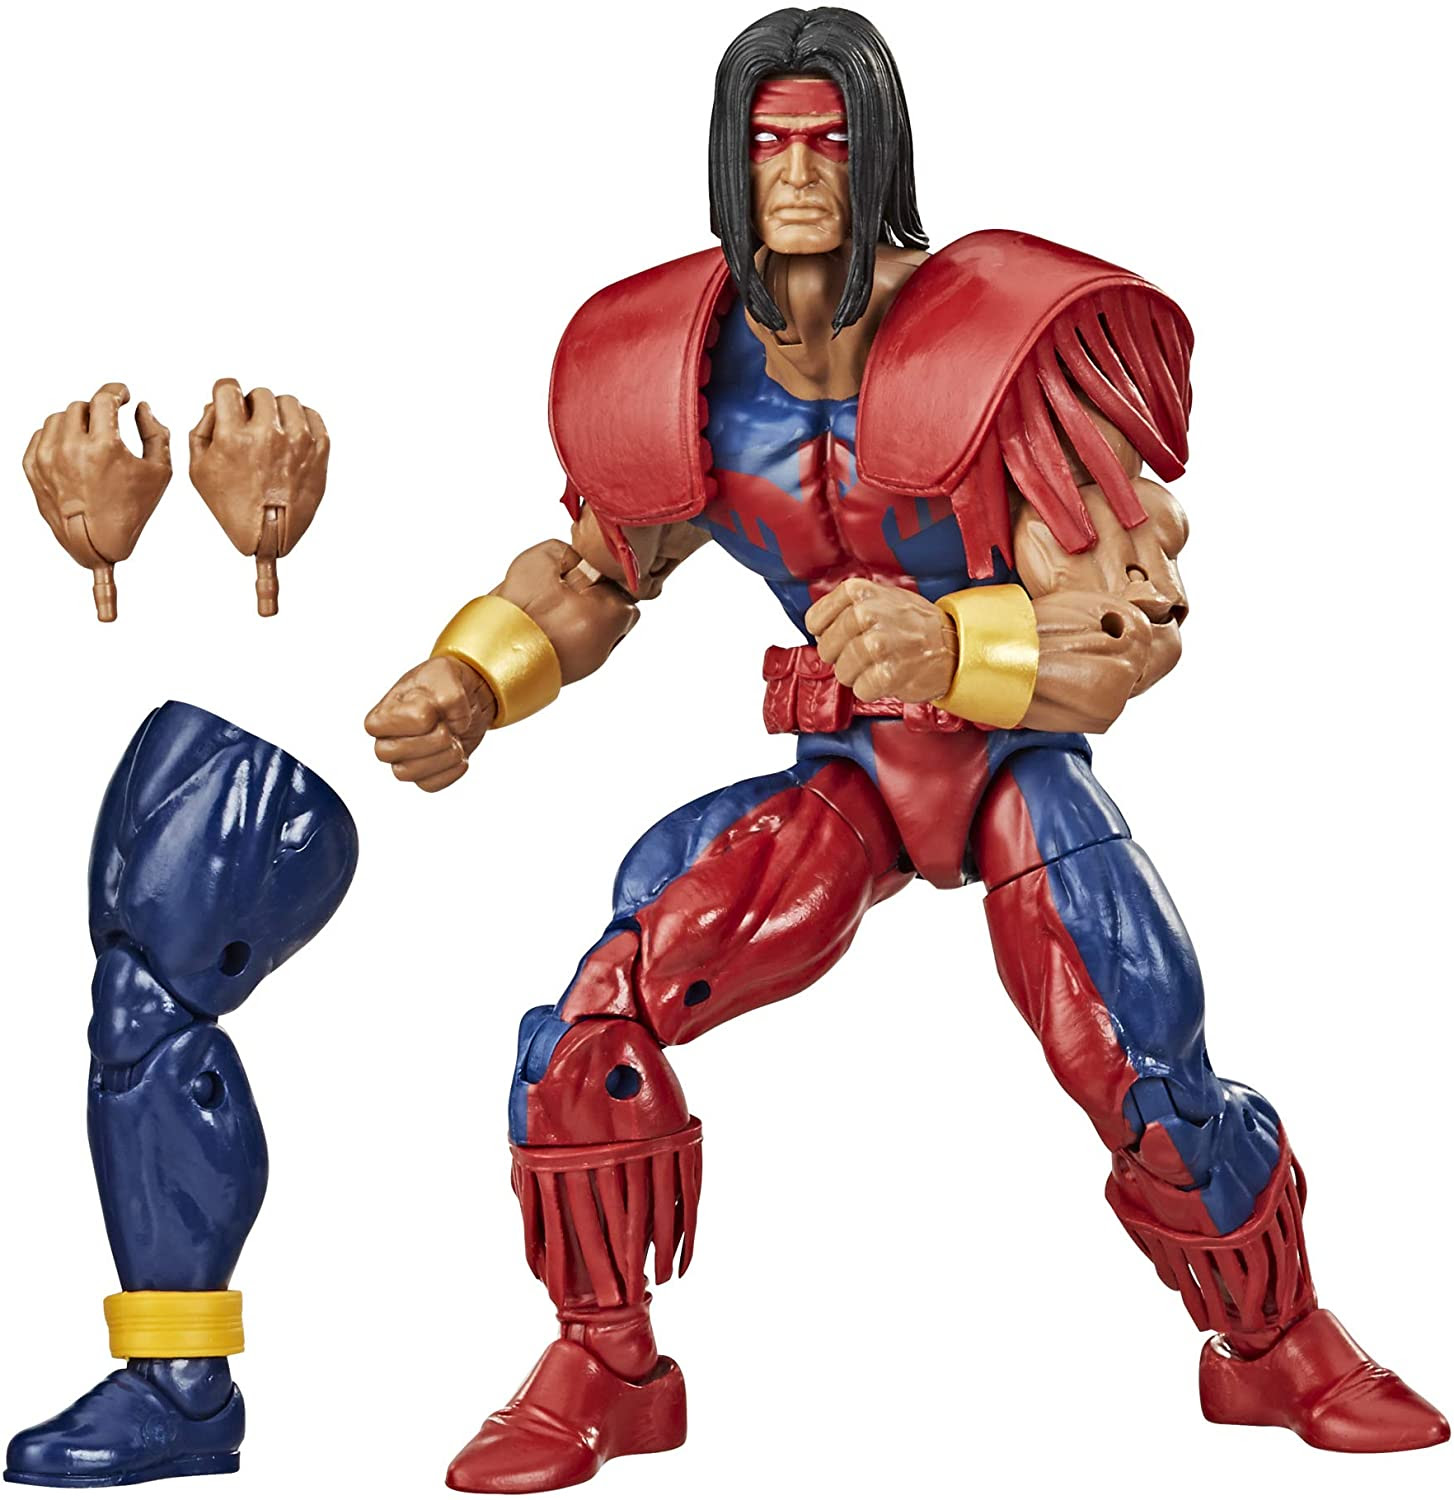 Image of Hasbro Marvel Legends Series Collection 6-inch Marvel's Warpath Action Figure Toy Premium Design and 2 Accessories